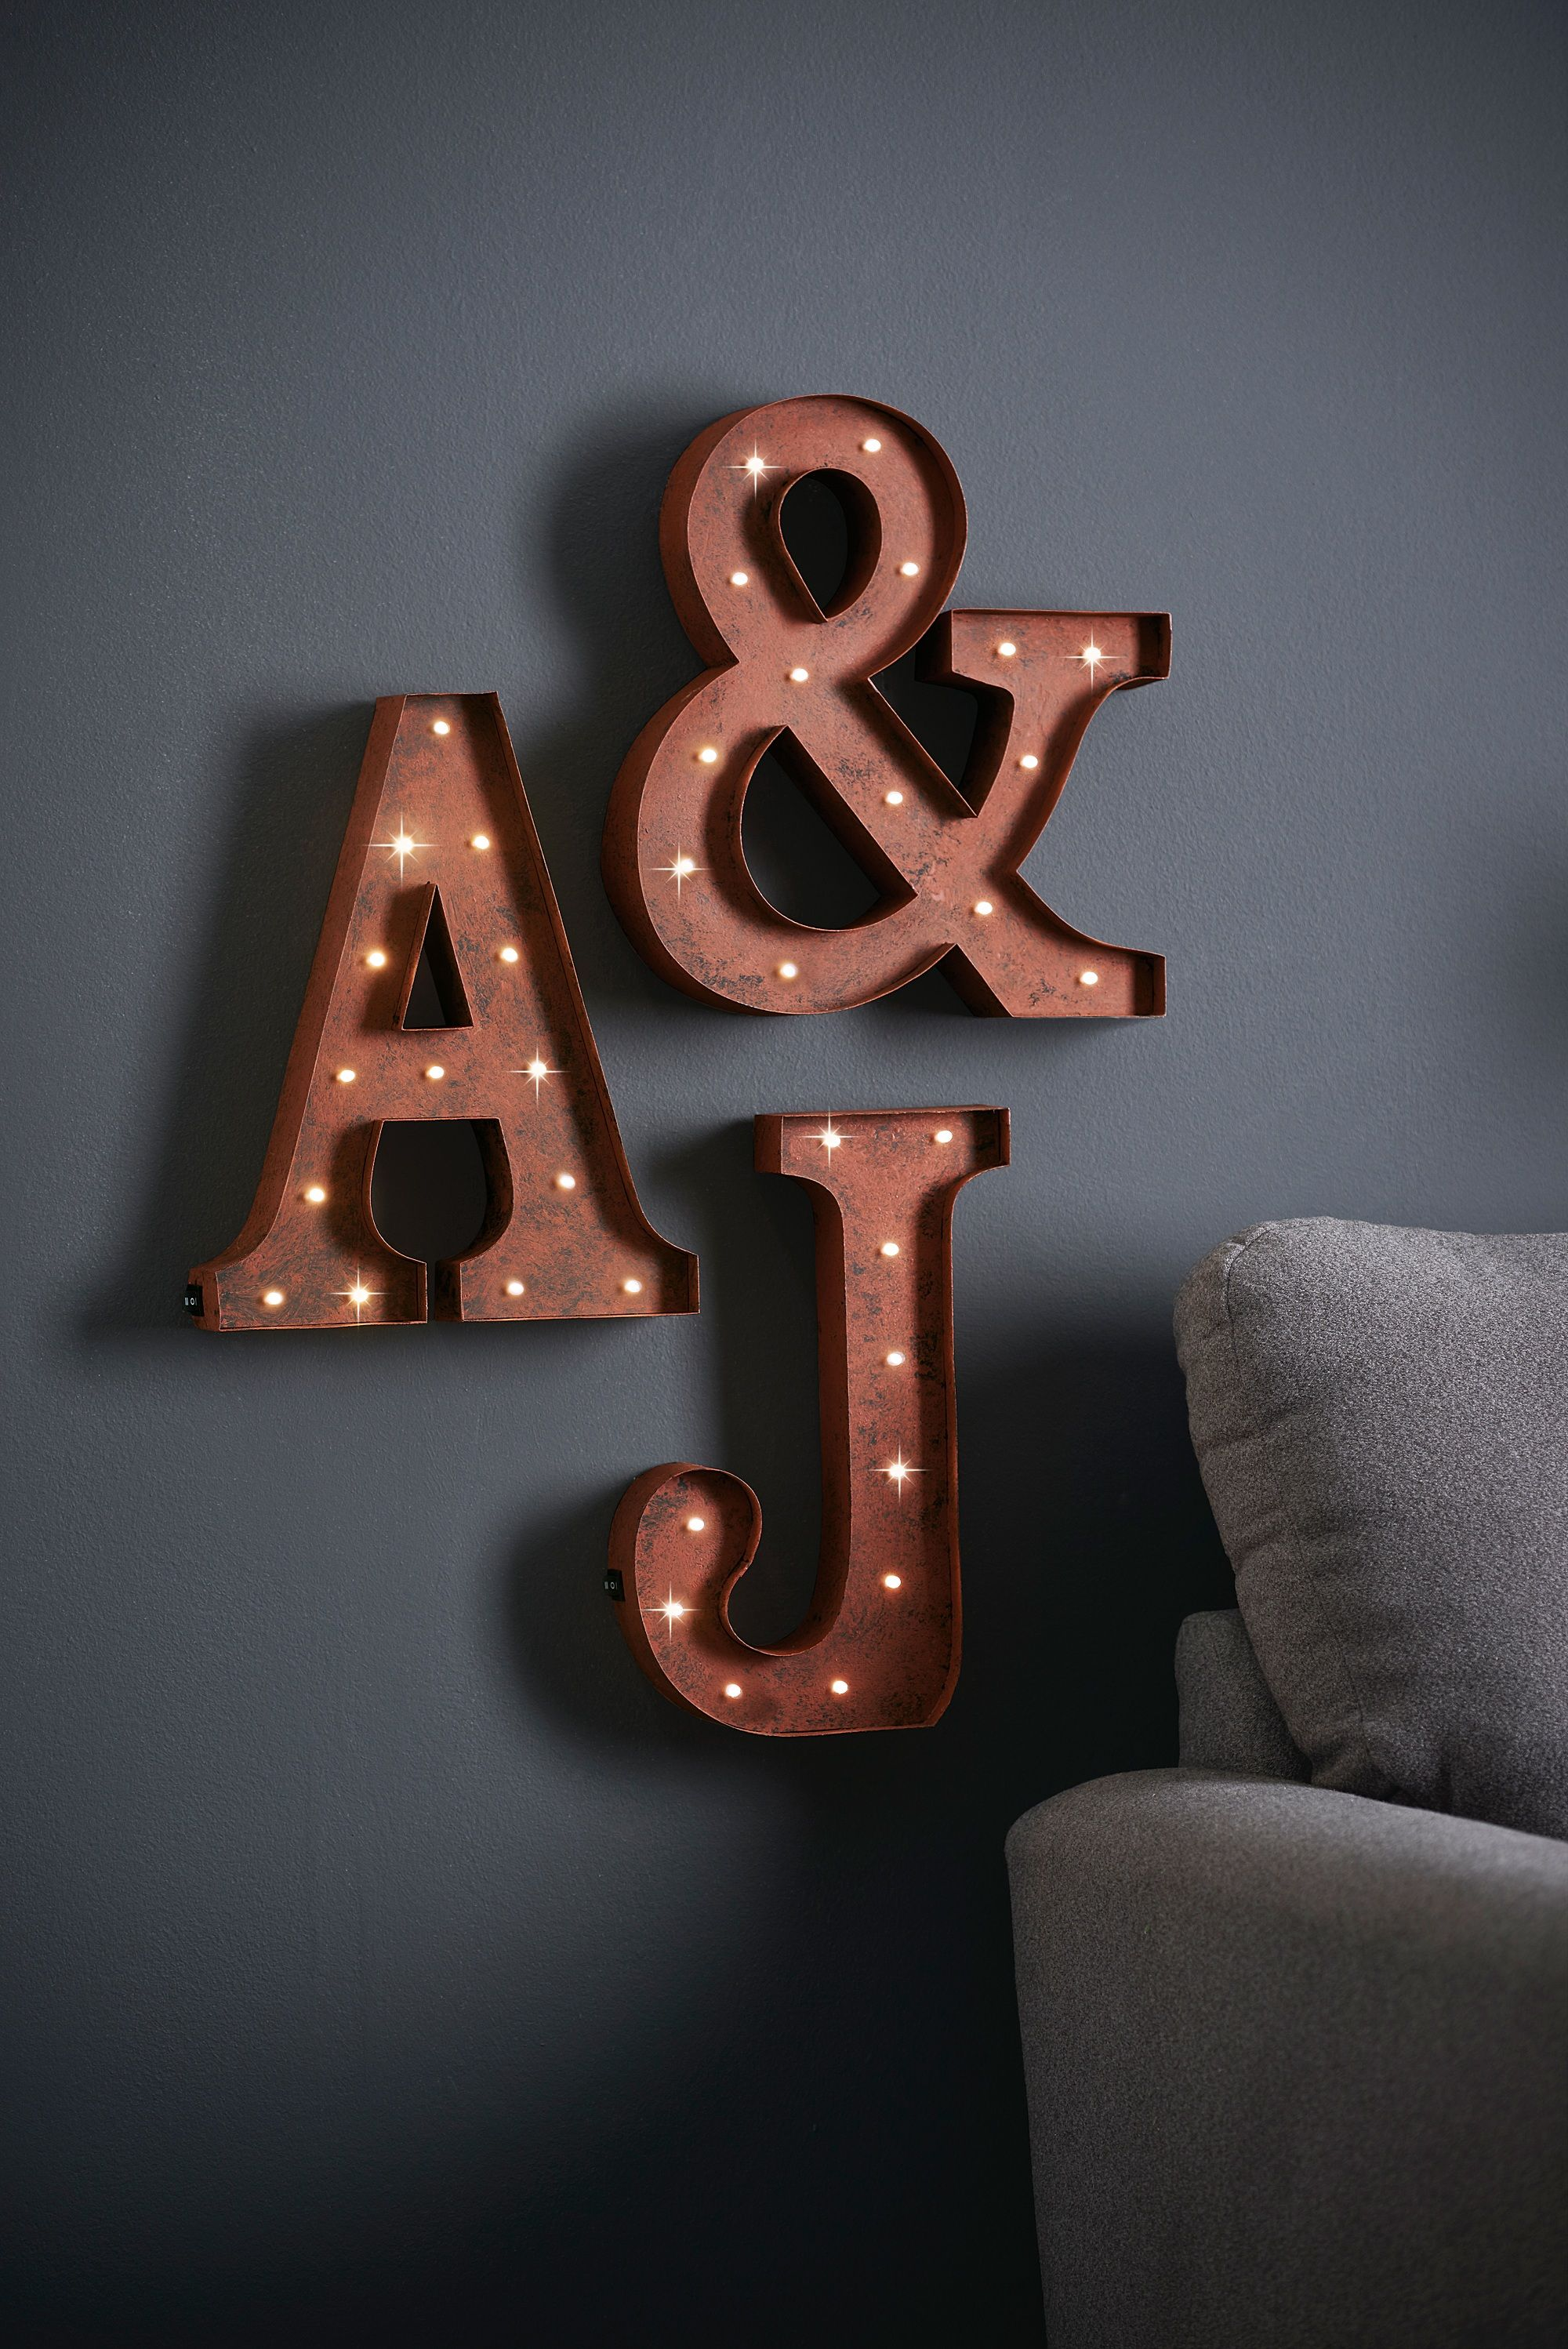 bedroom wall plaques. Add A Personal Touch To Your Home With This Stylish Lit Alphabet Wall Plaques From Next. Bedroom